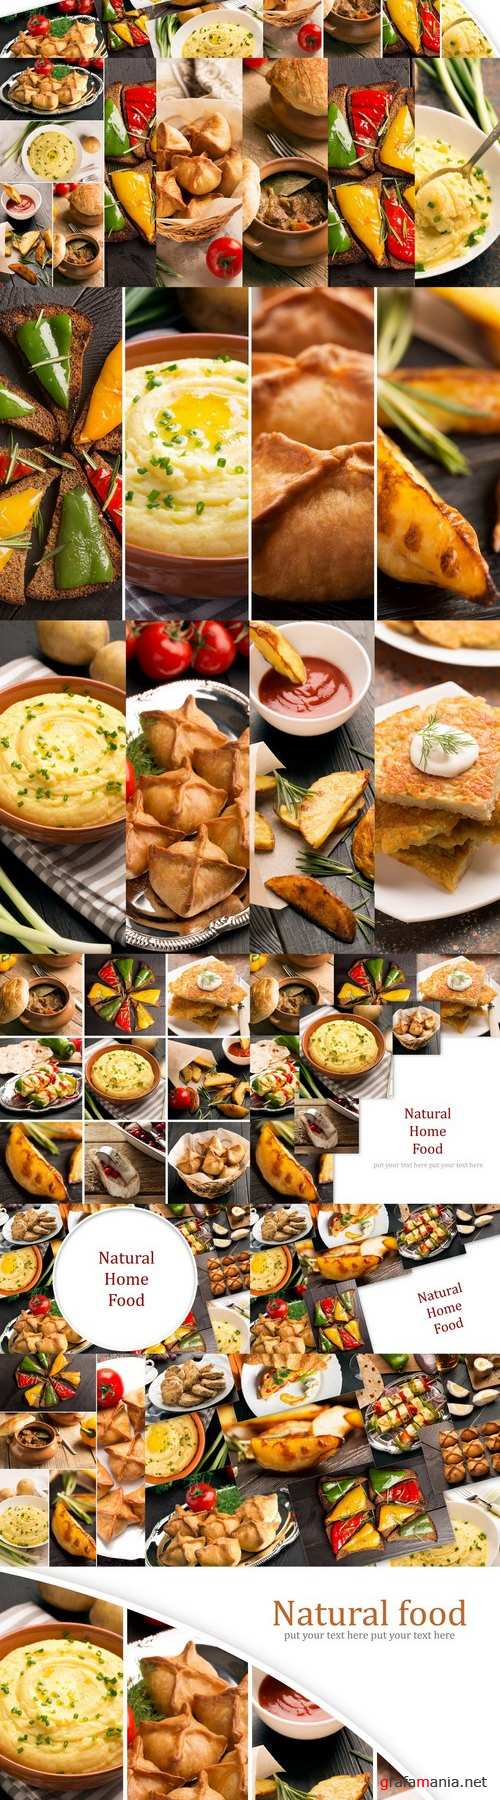 Natural food (photo collage)